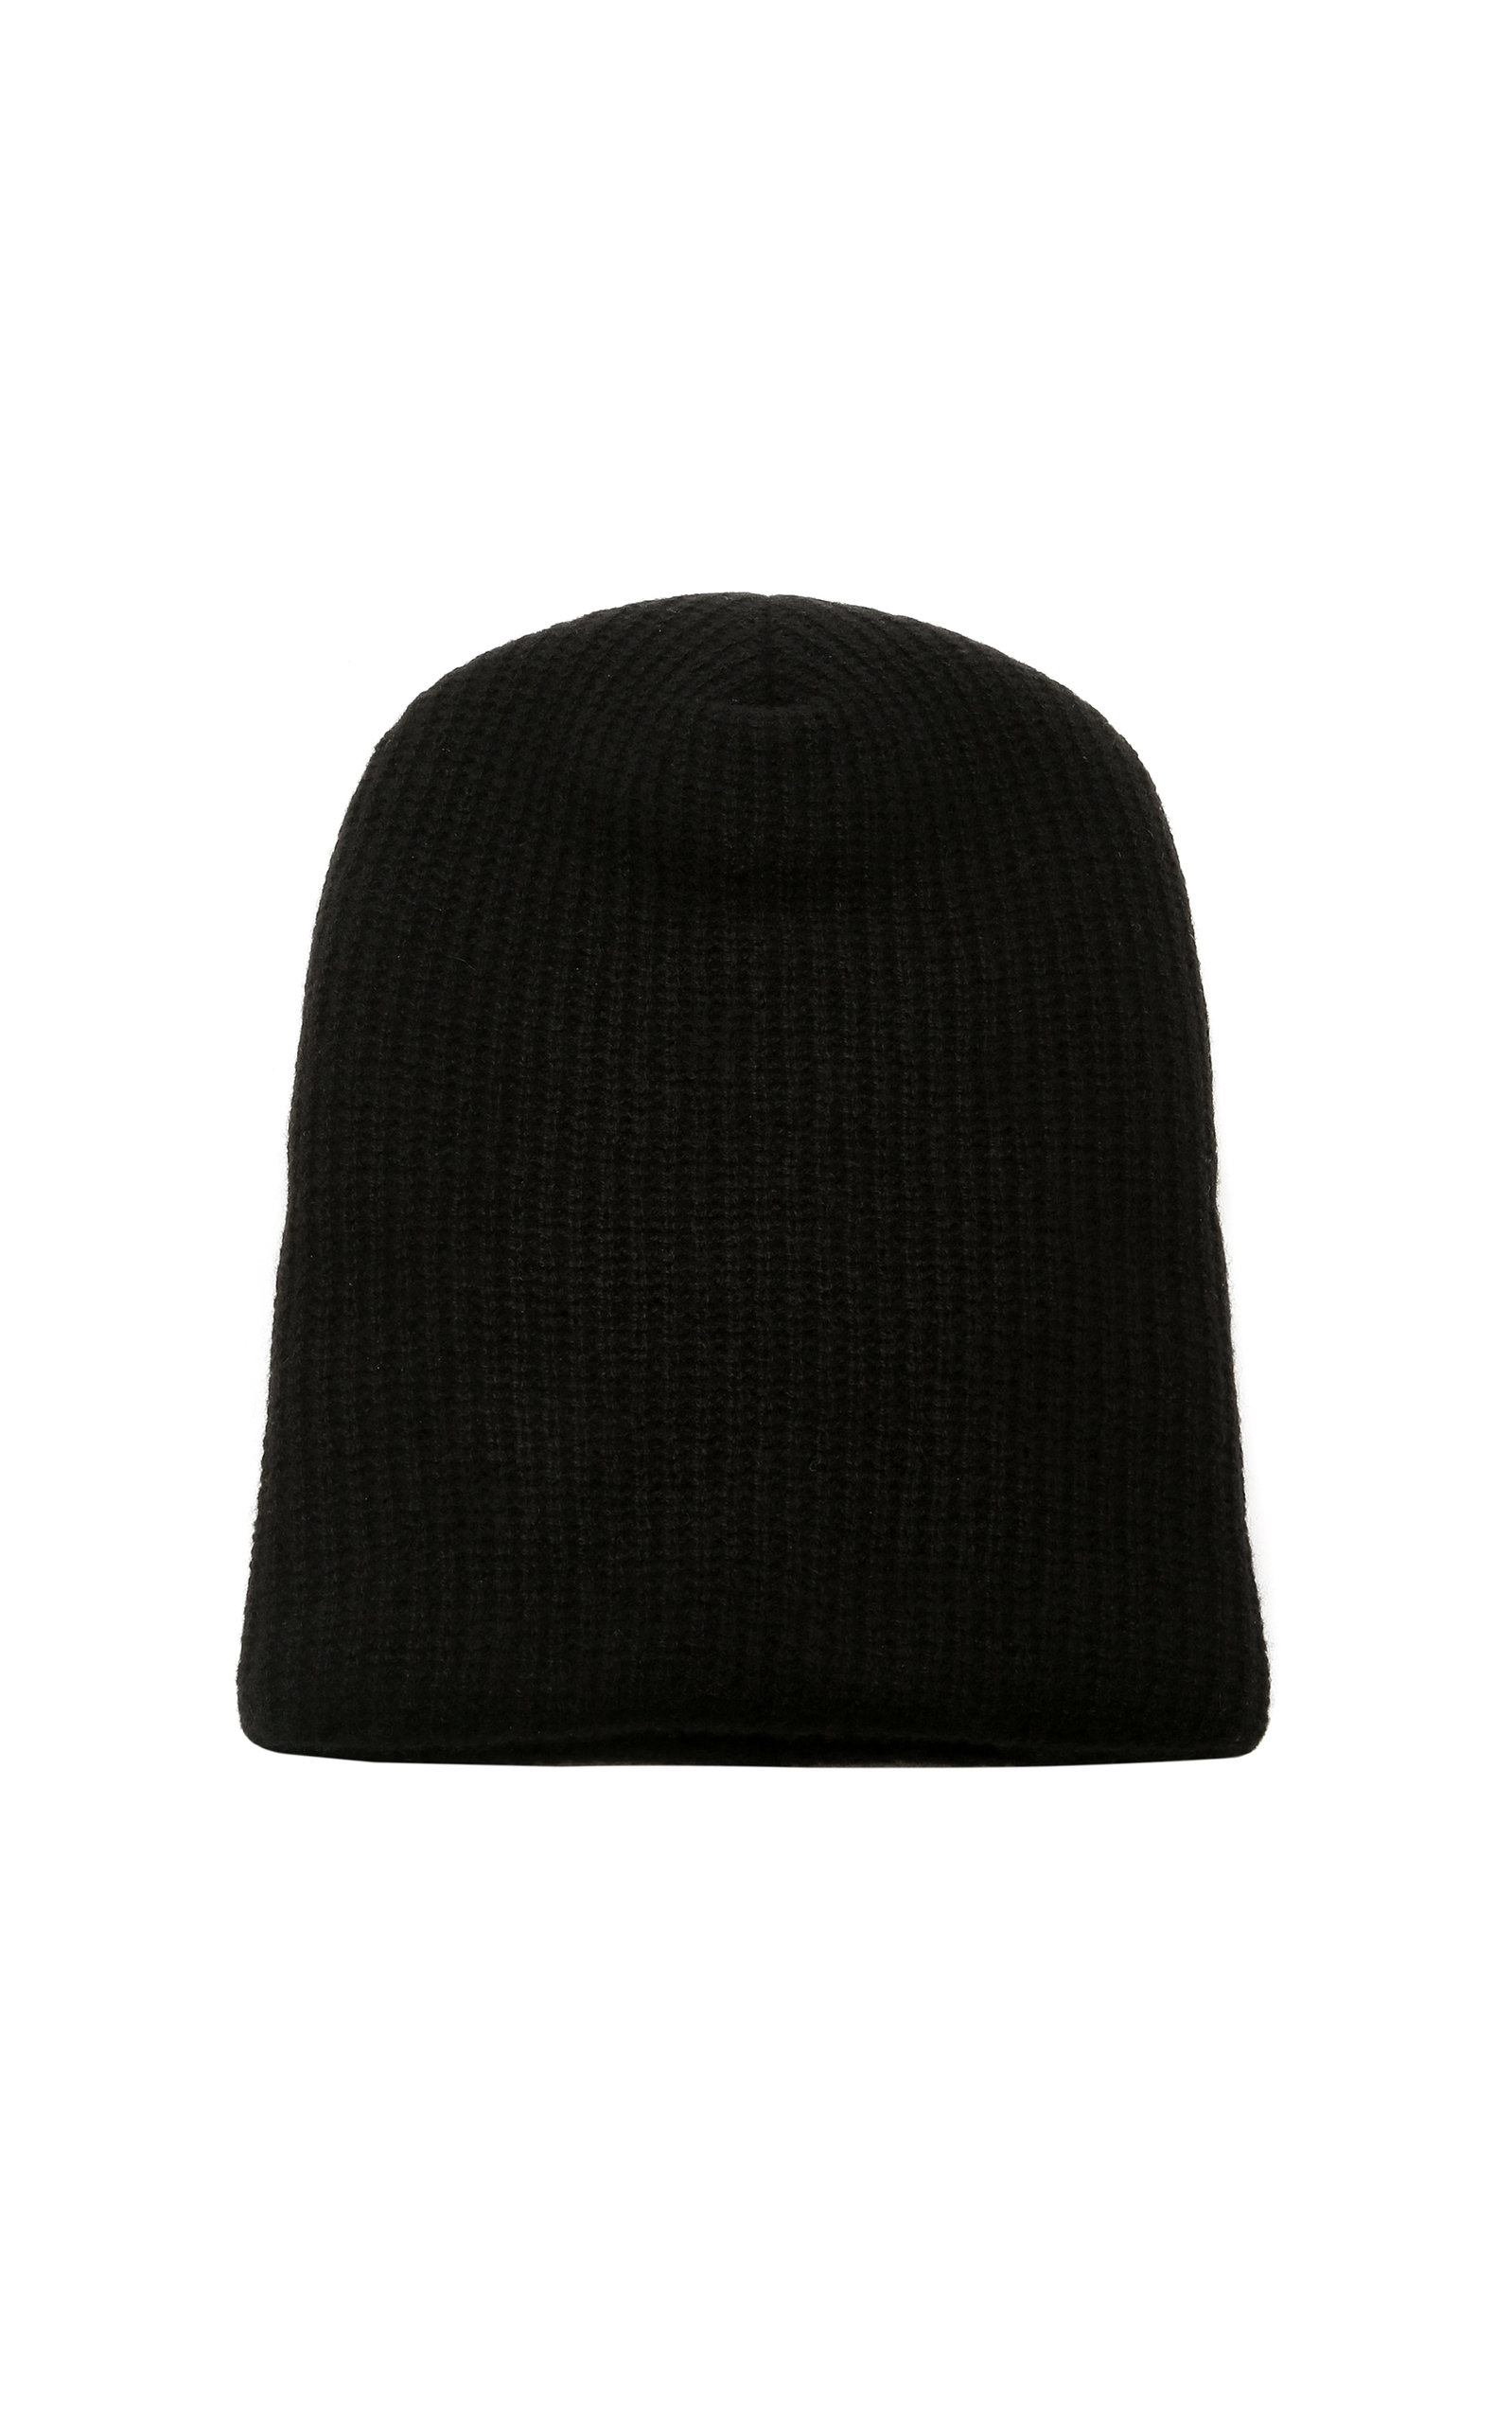 59be13fec98 The Elder StatesmanKisser Ribbed Cashmere Beanie. CLOSE. Loading